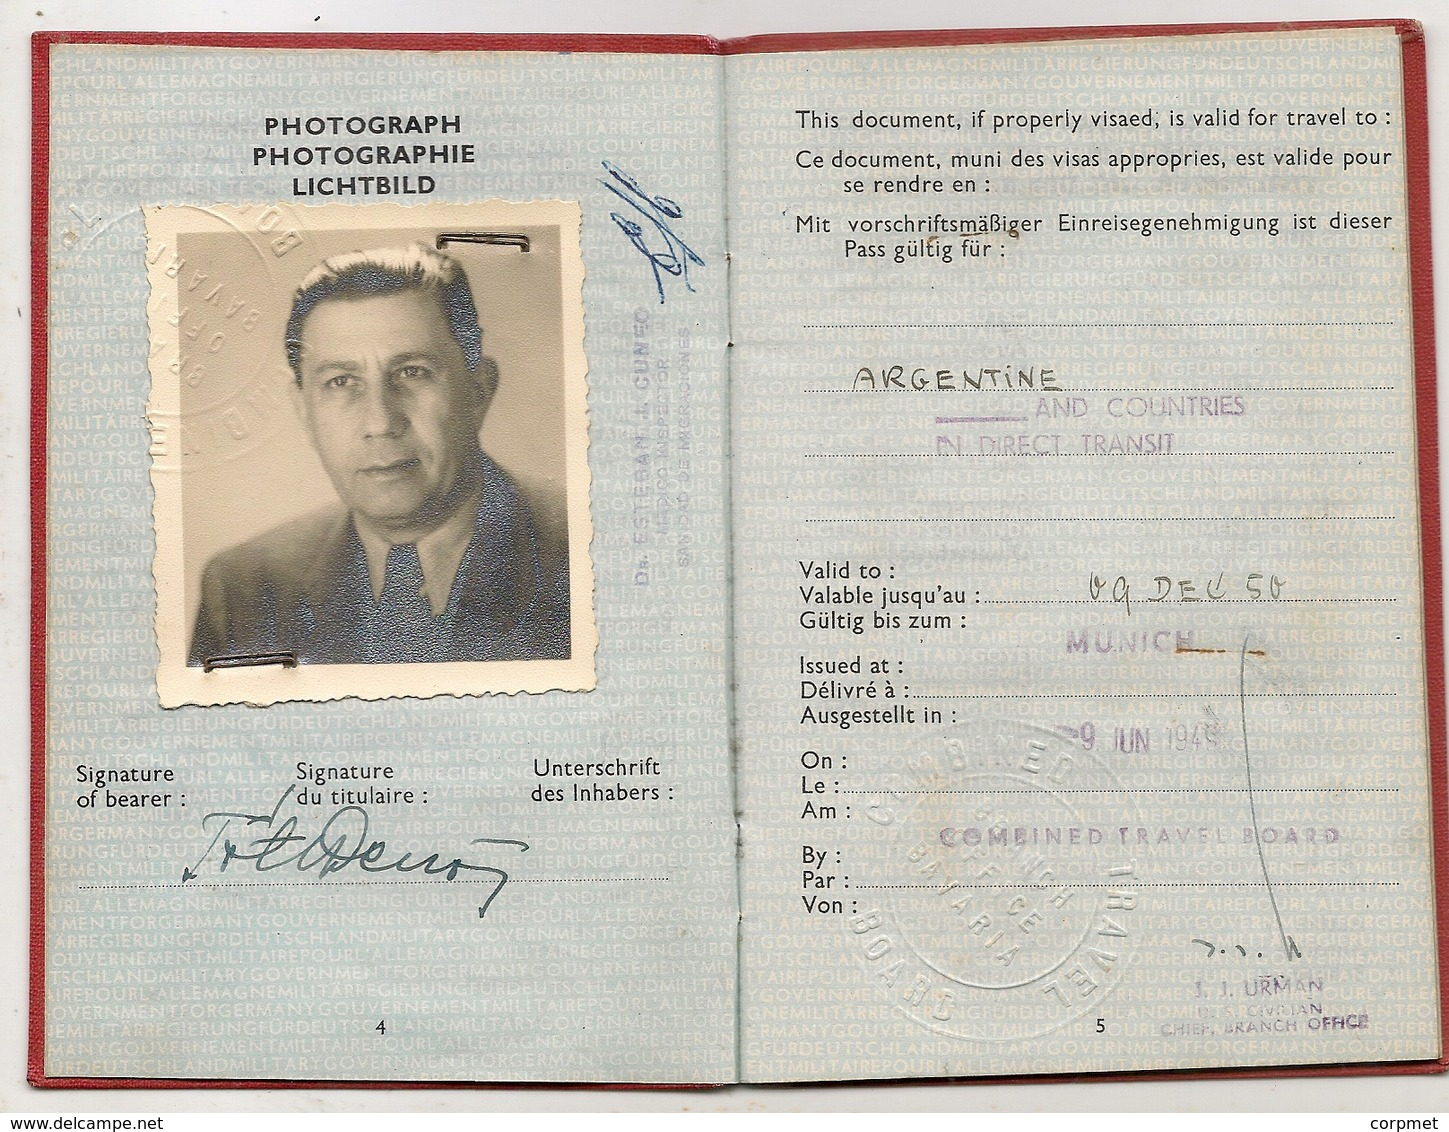 MILITARY GOVERNMENT FOR GERMANY 1949 -PASSPORT - PASSEPORT For Hungarian TOTH DEZSO Exit Permit To ARGENTINA -NOT COMMON - Historische Dokumente